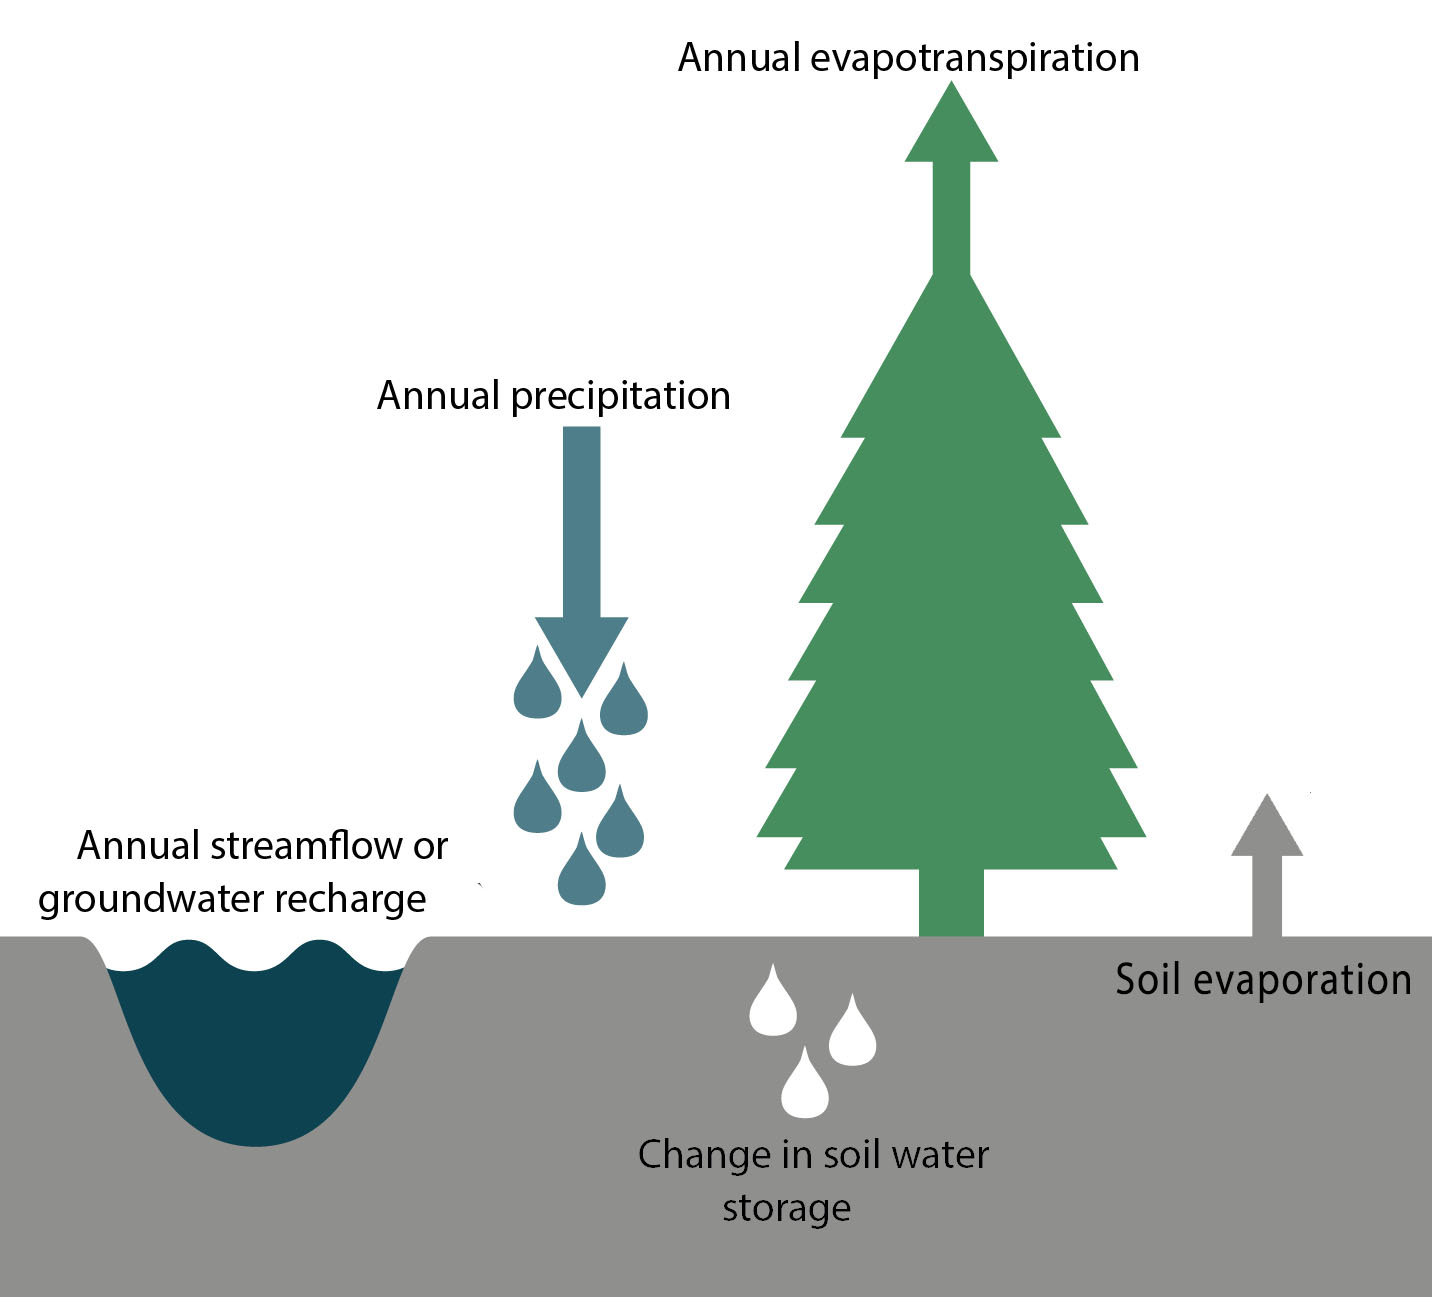 Elements of the annual water balance: Annual streamflow or groundwater recharge, annual precipitation, annual evapotranspiration, soil evaporation, change in soil water storage